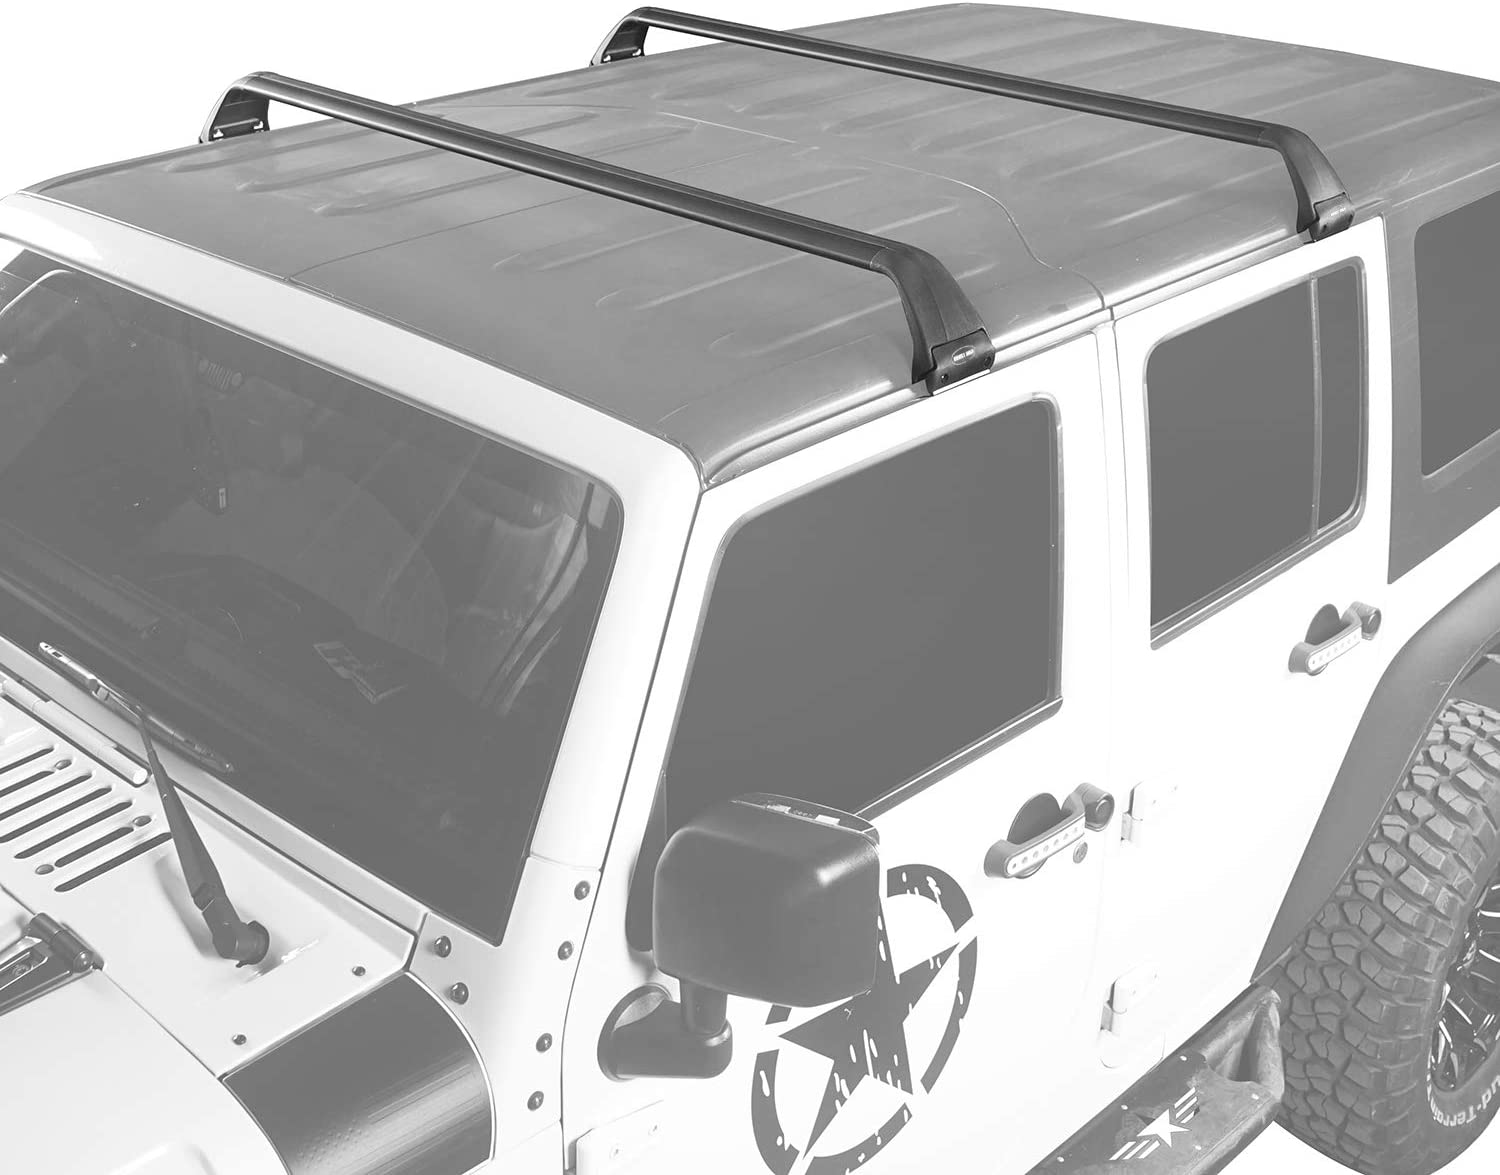 u-Box Roof Rack Removable Roof Cross Bar Kit for 2007-2020 Jeep Wrangler JK JL Luggage Baggage Hard Top Cargo Carries